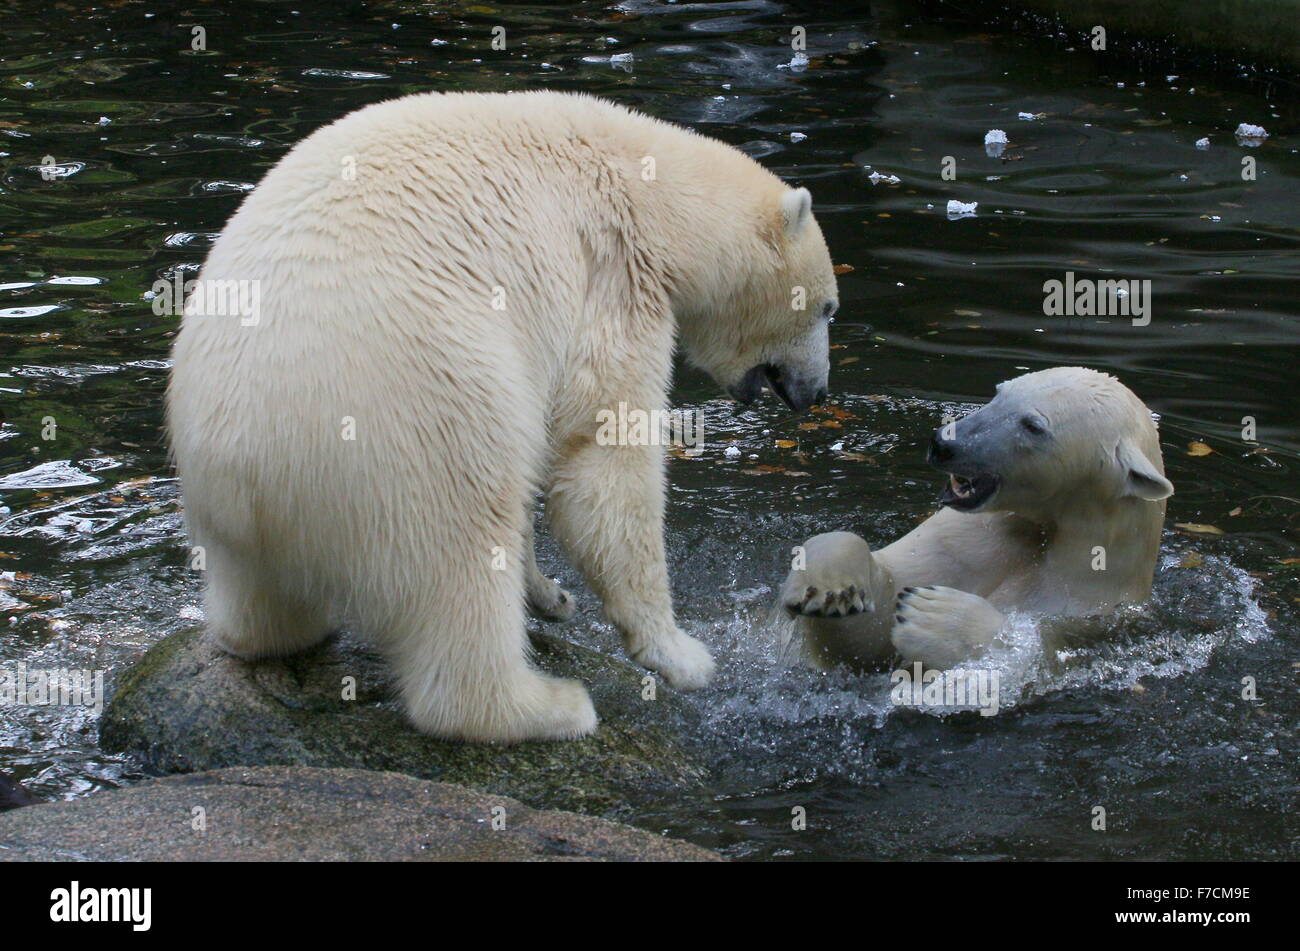 Two feisty female Polar bears (Ursus maritimus) fighting each other on shore, one growling, other surfacing from - Stock Image